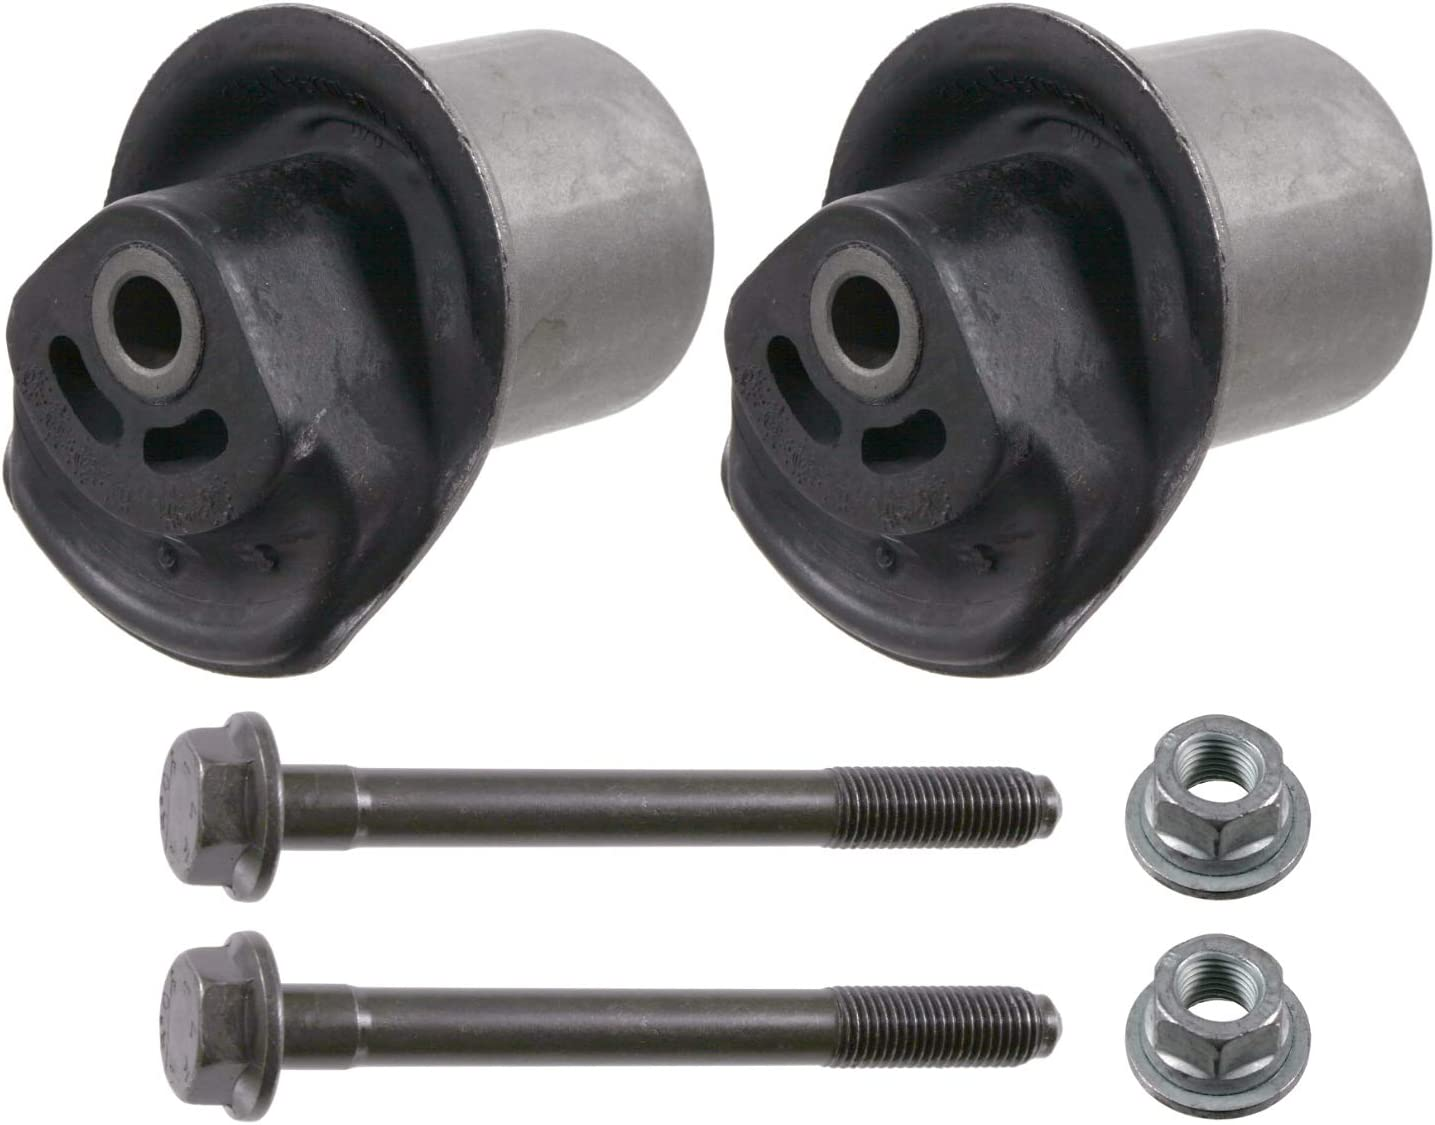 febi bilstein 01220 axle beam mounting kit with screws and nuts Pack of 1 rear axle both sides